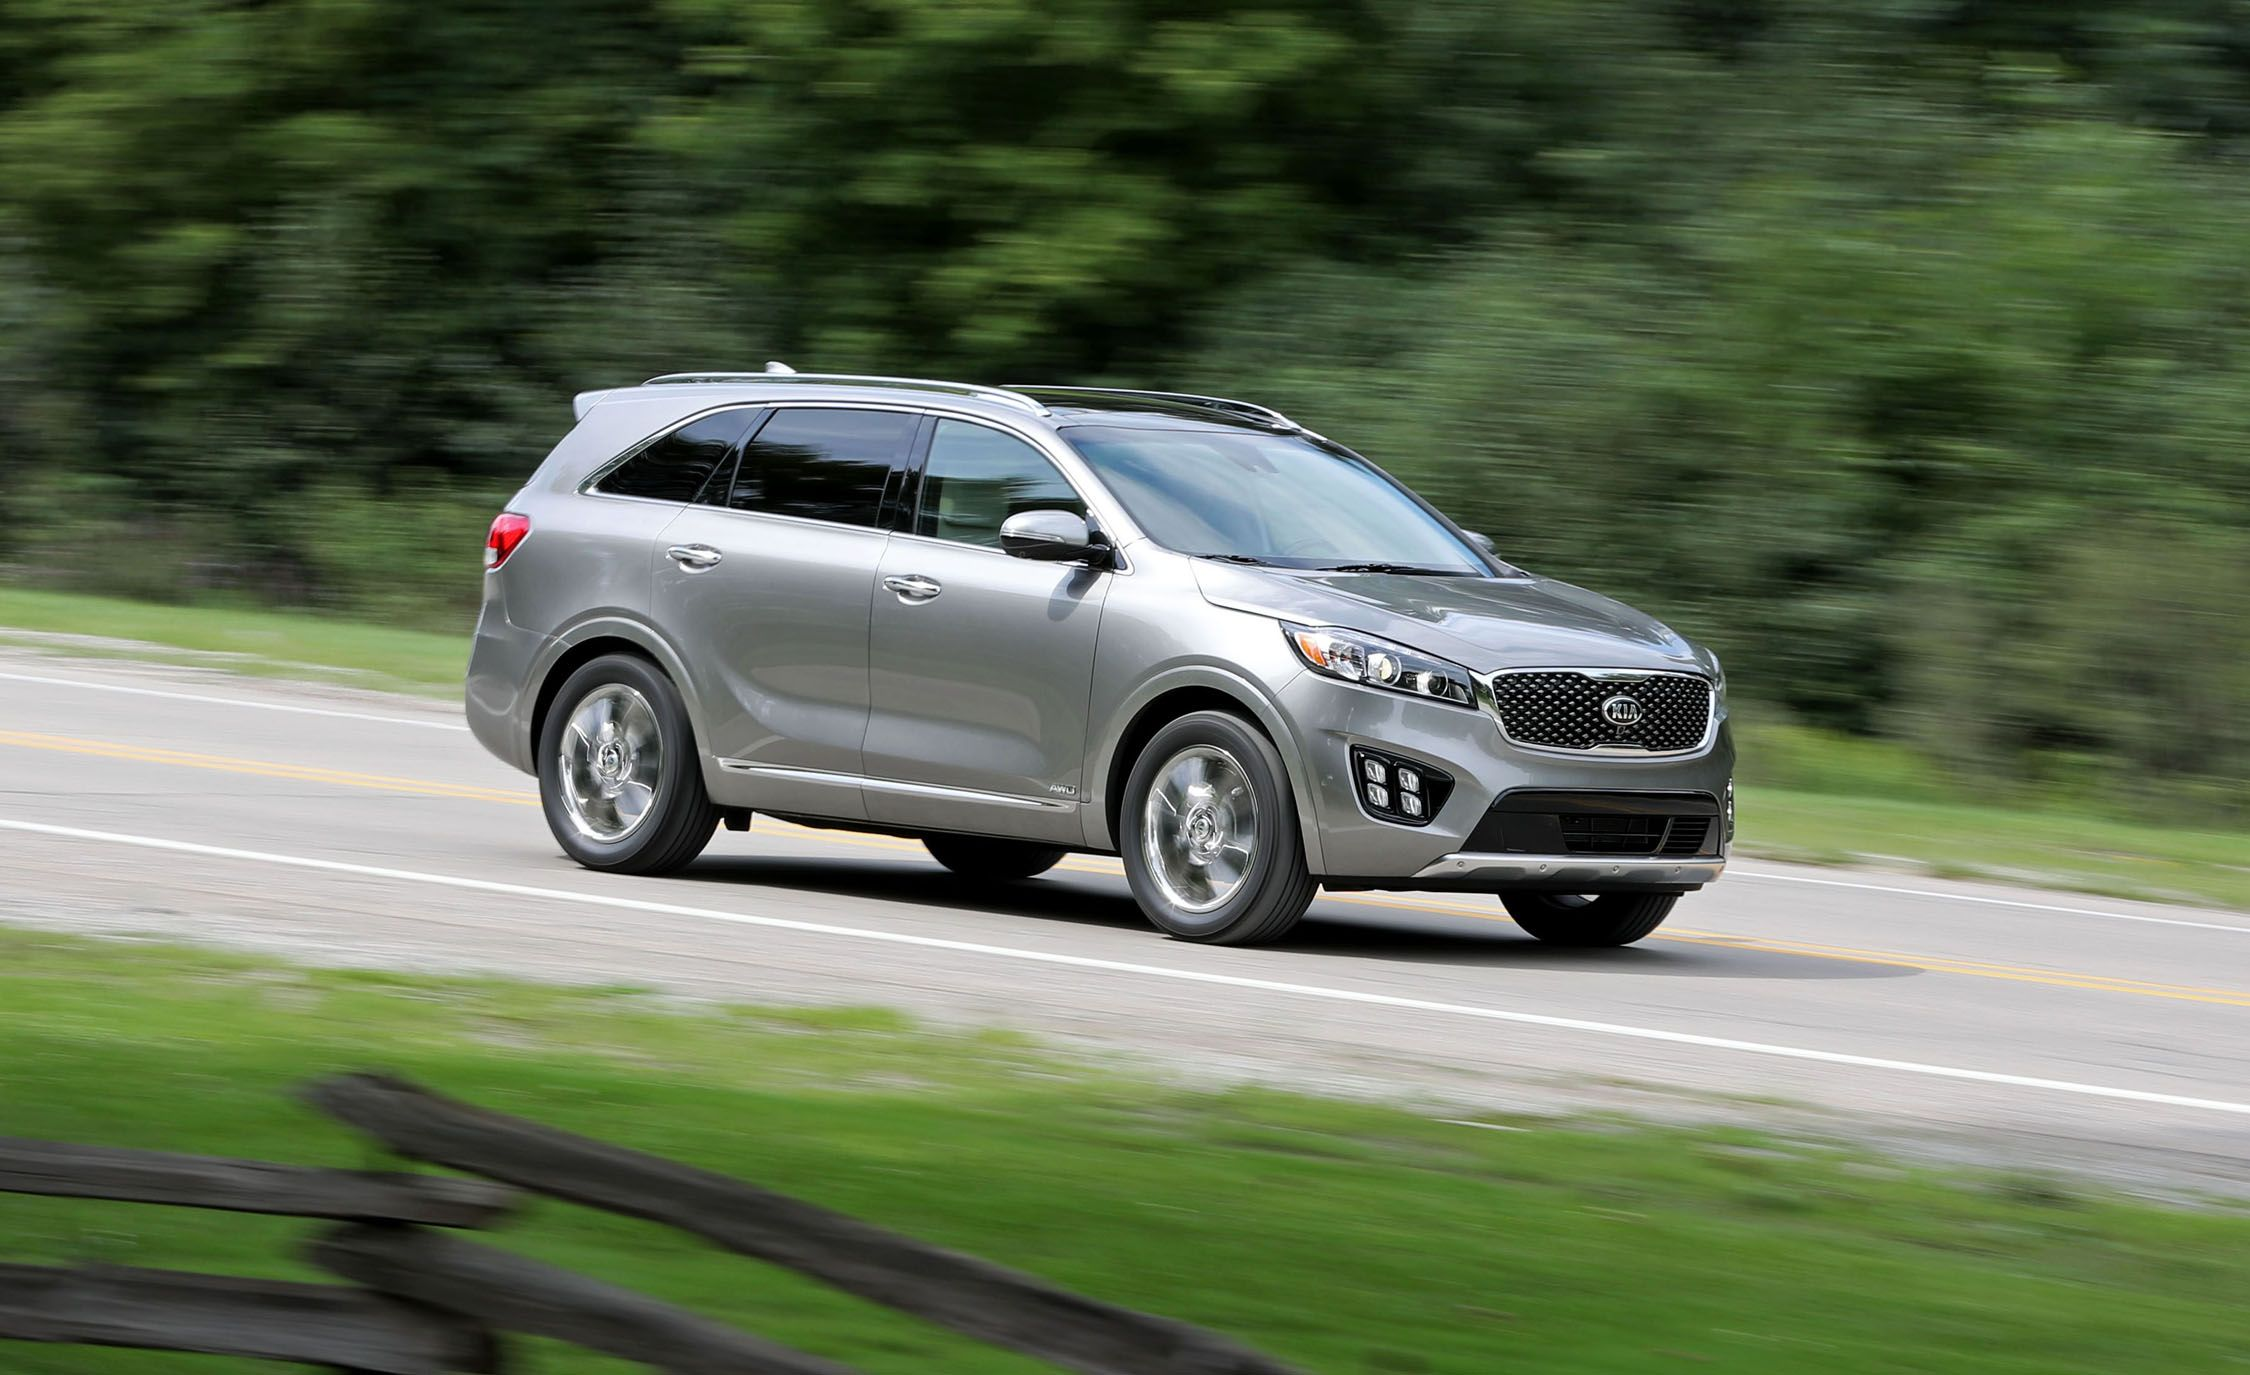 Ford Suv Models >> 2018 Kia Sorento | In-Depth Model Review | Car and Driver